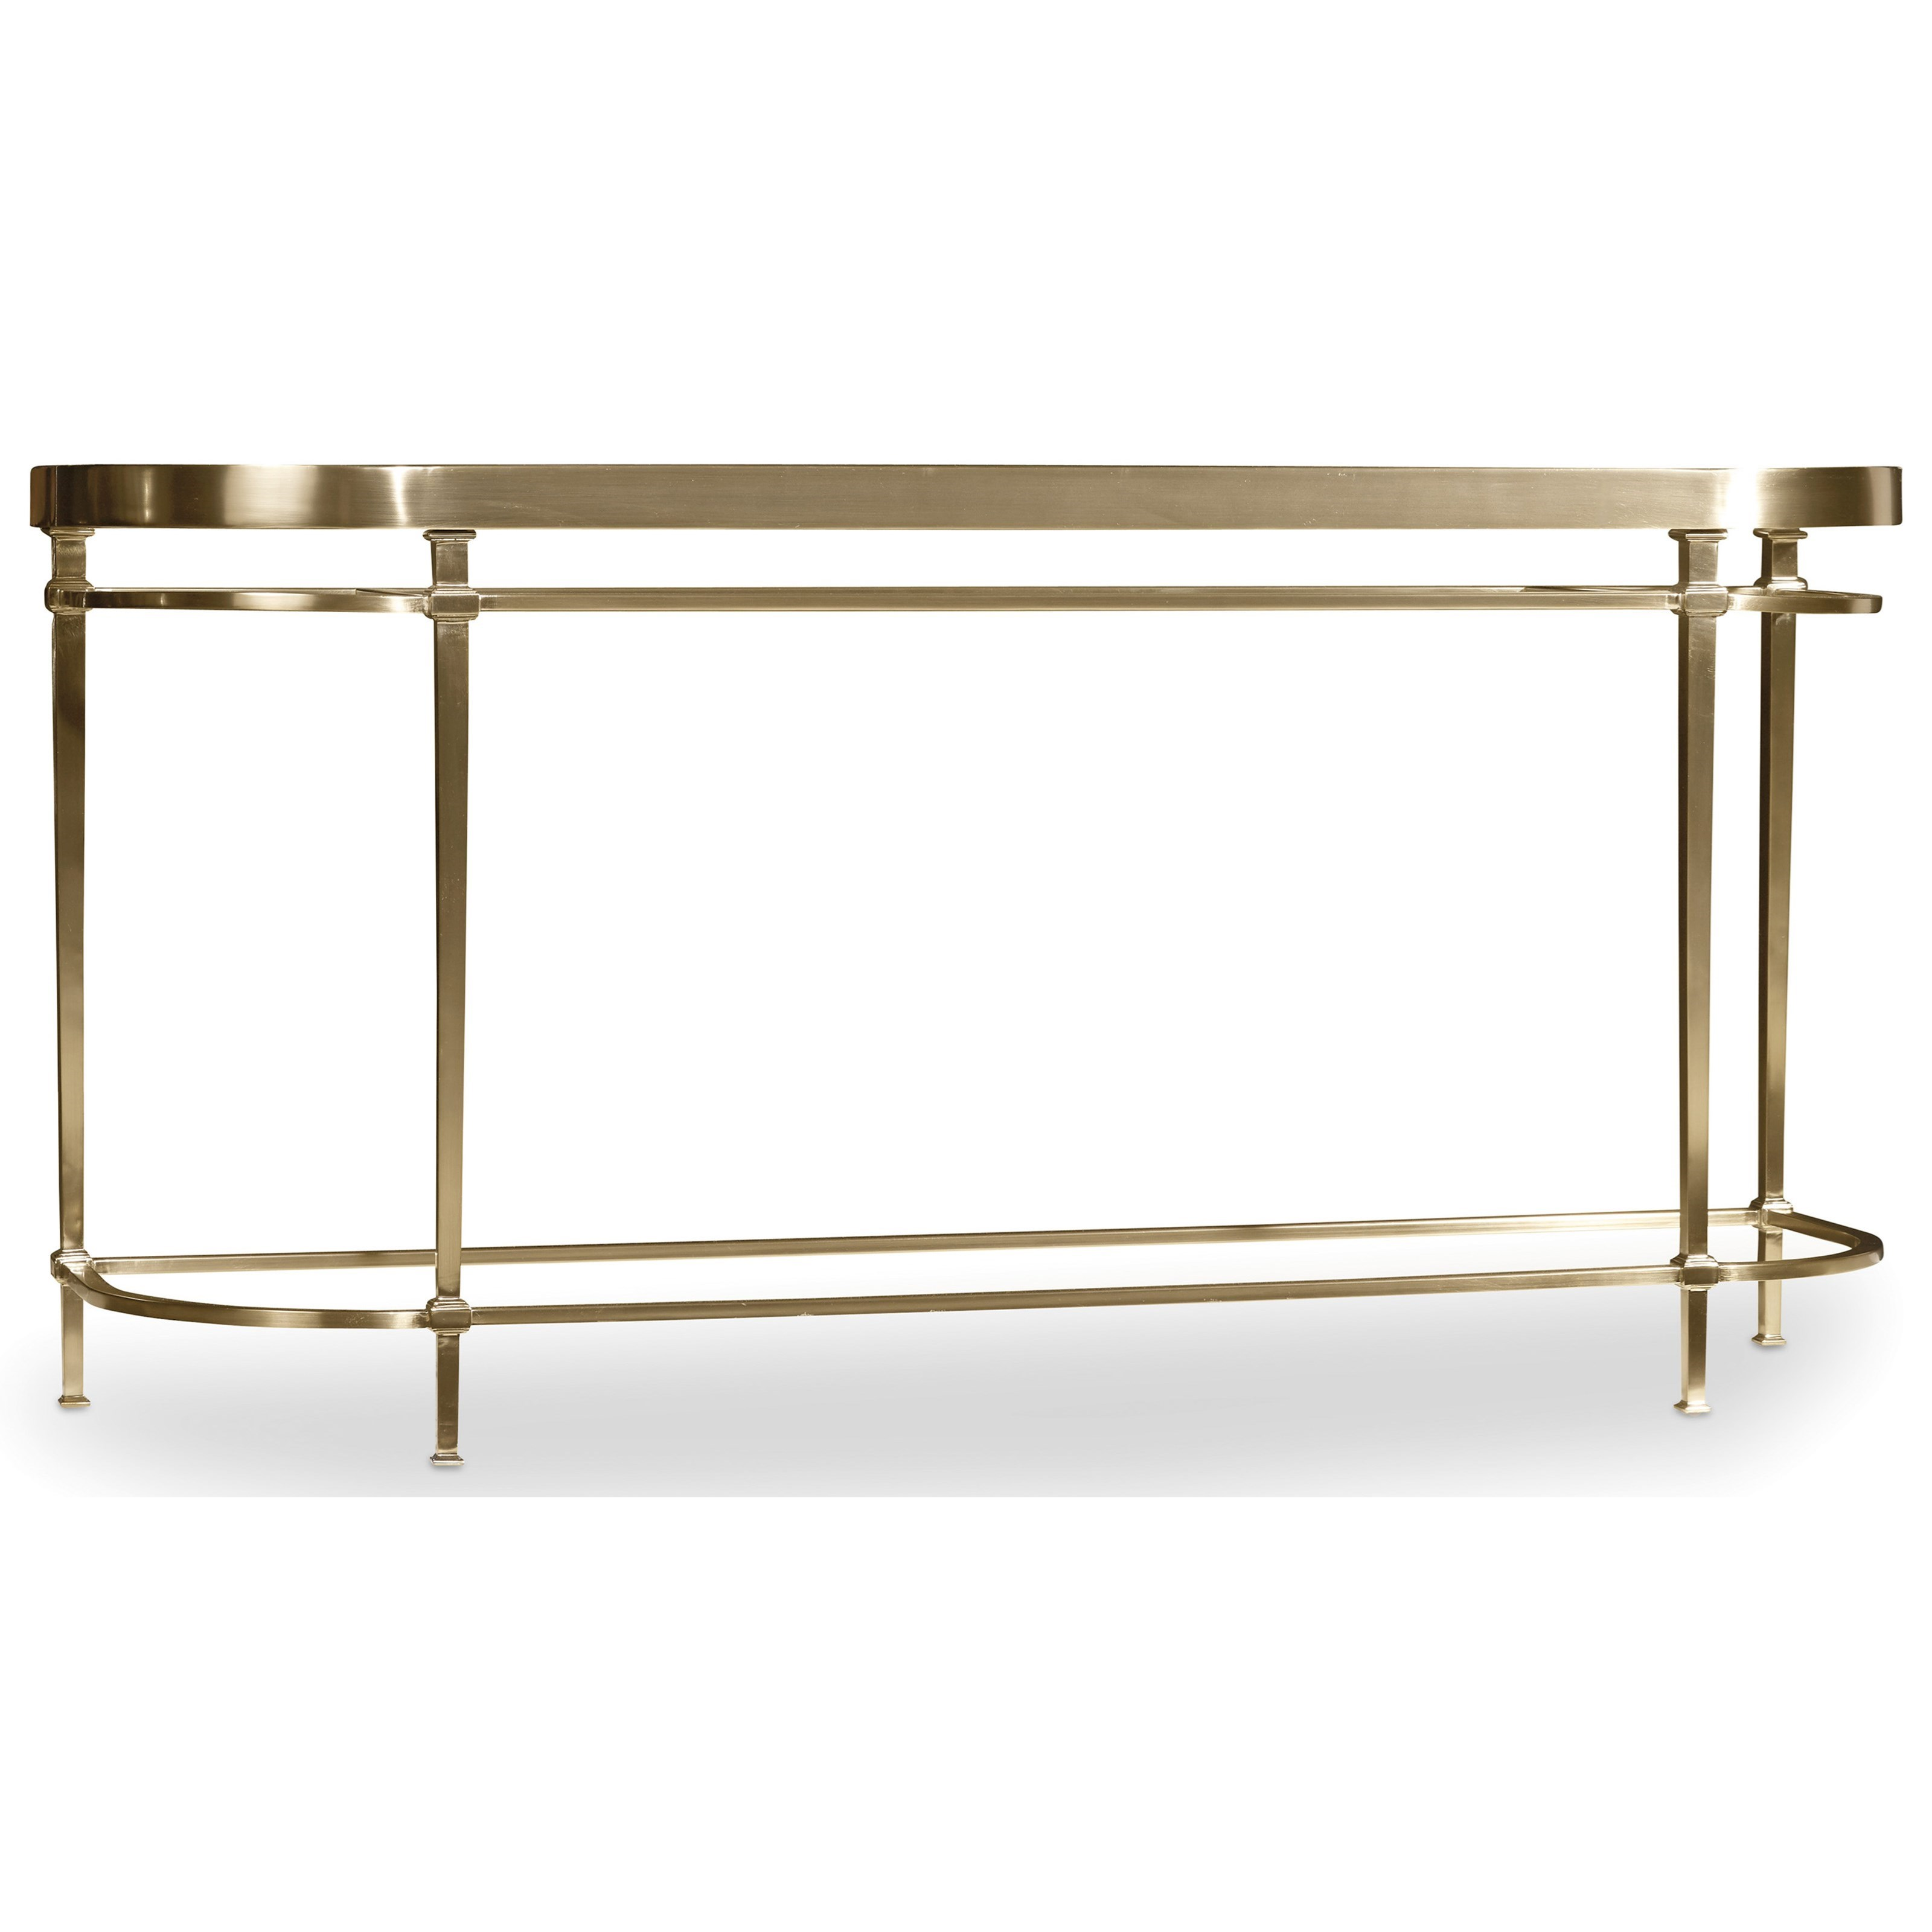 Hamilton Home Highland Park Console Table - Item Number: 5443-80151